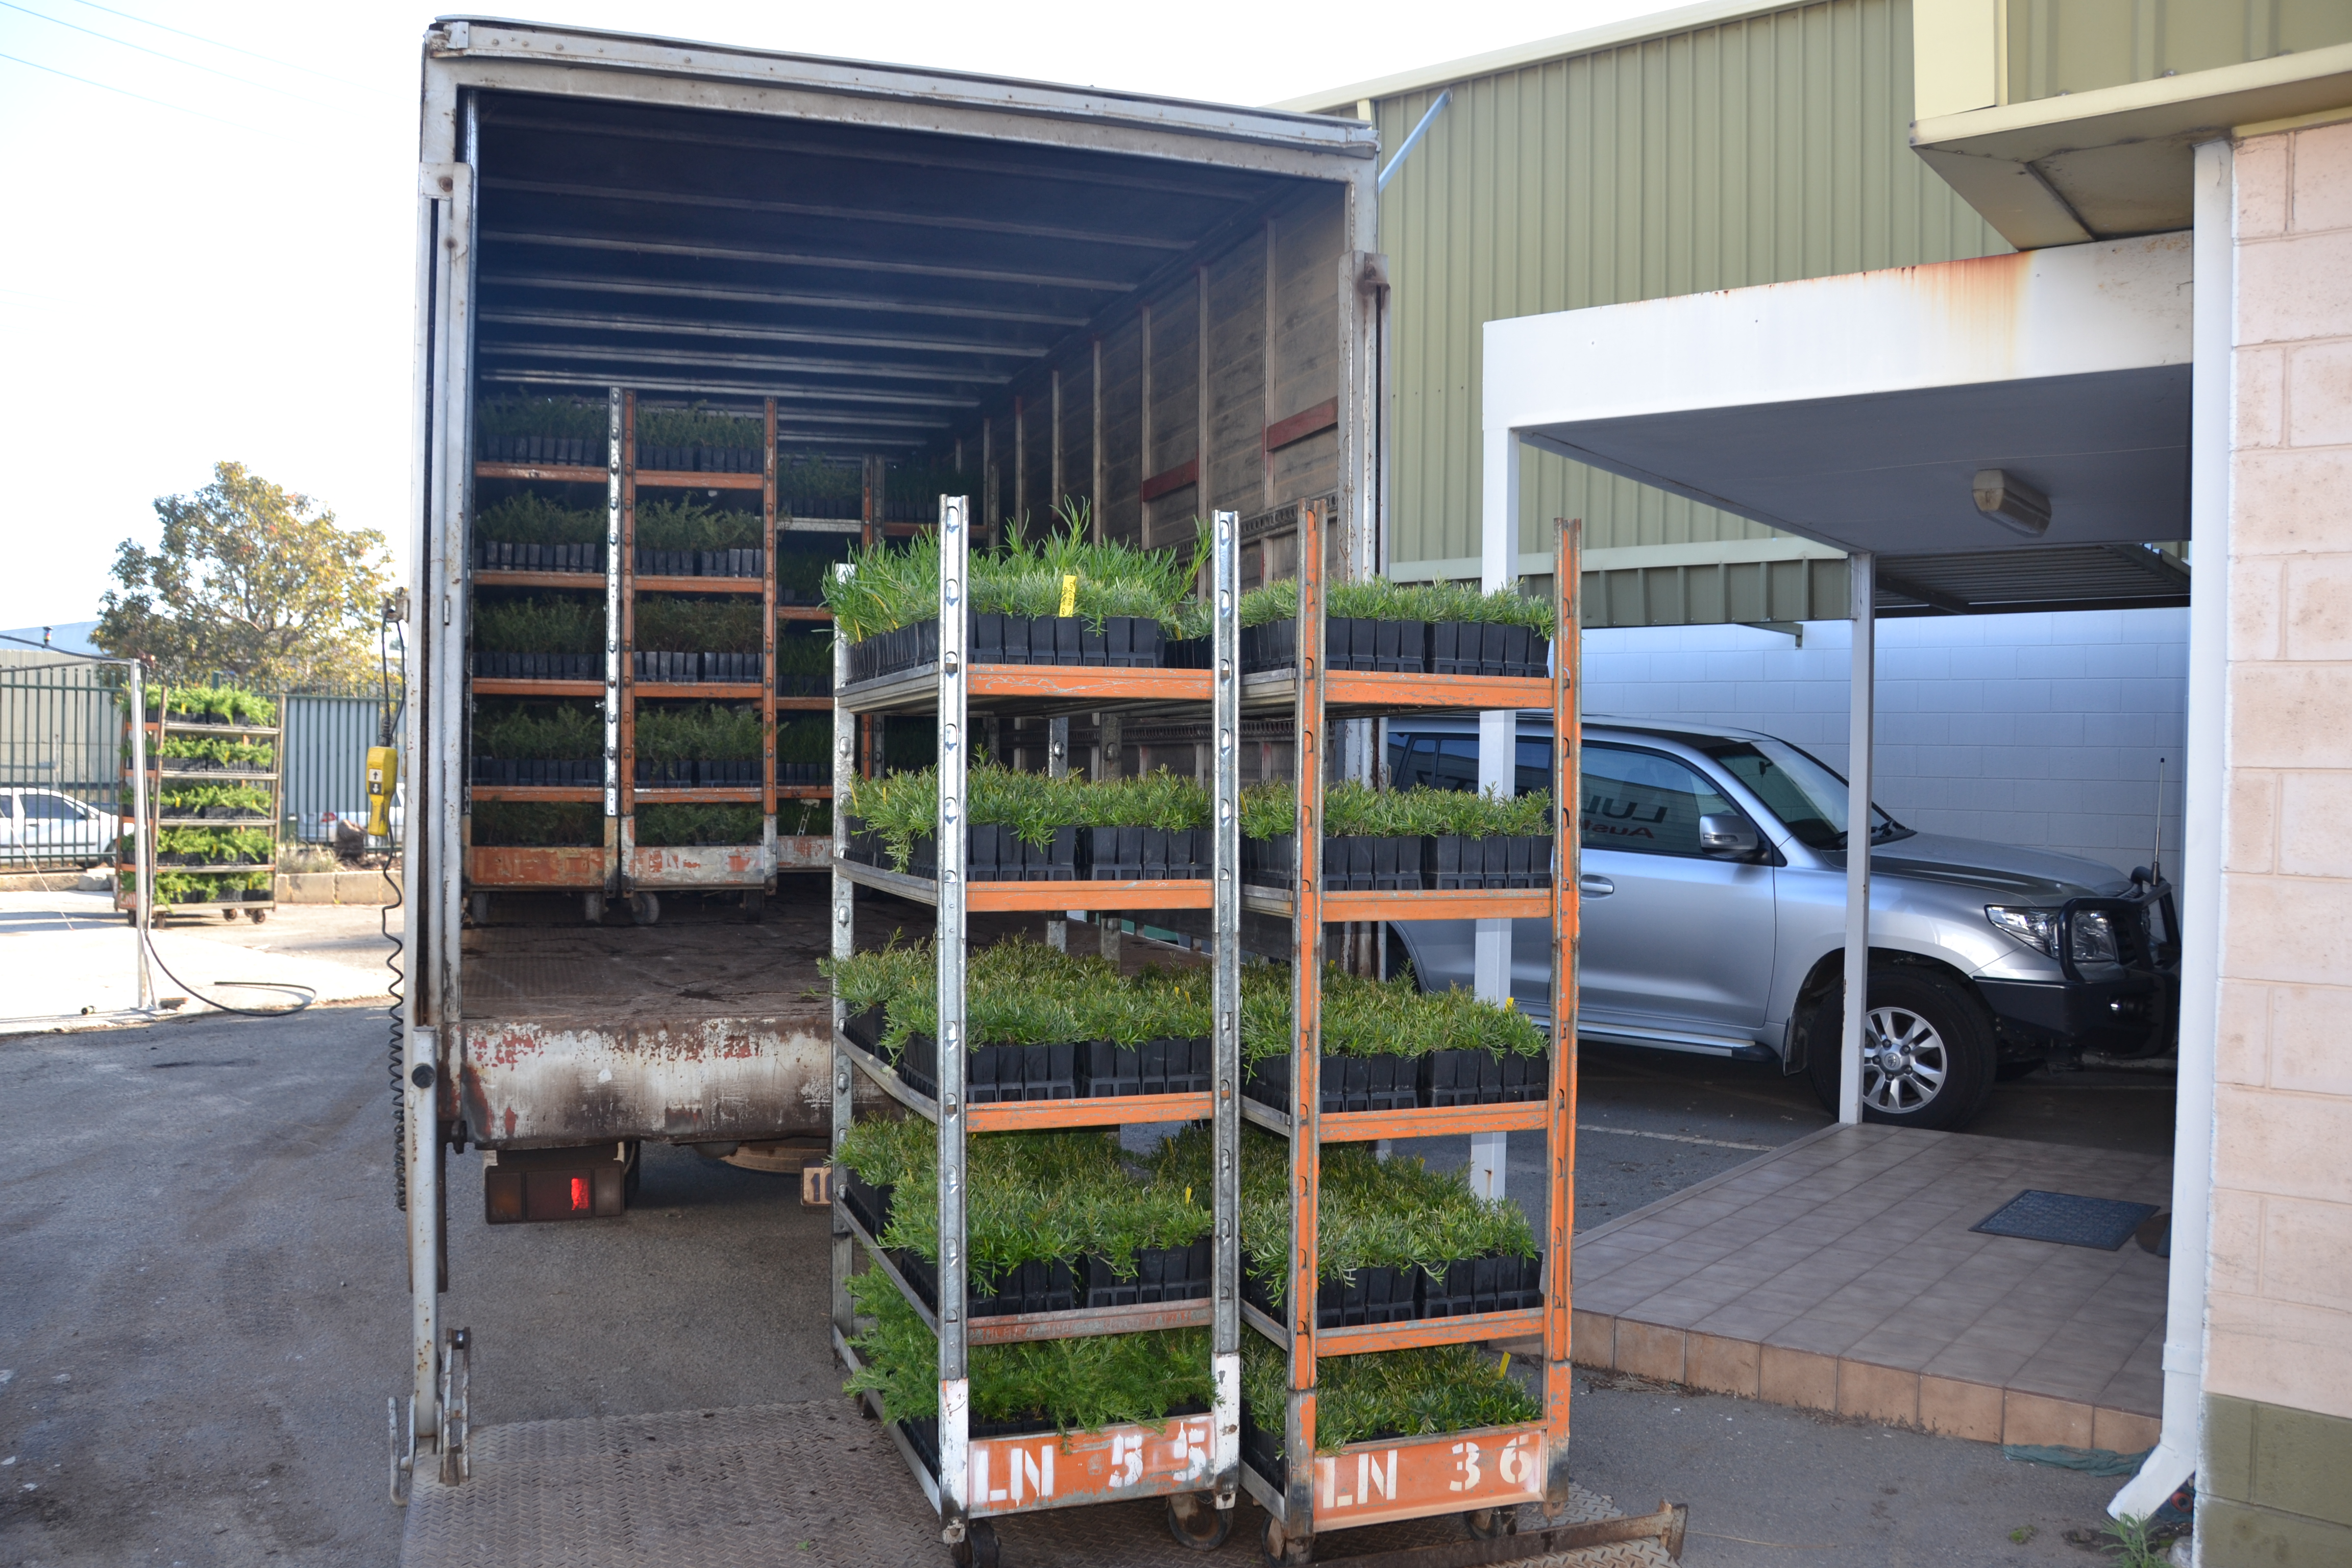 Delivery of seedlings from nursery